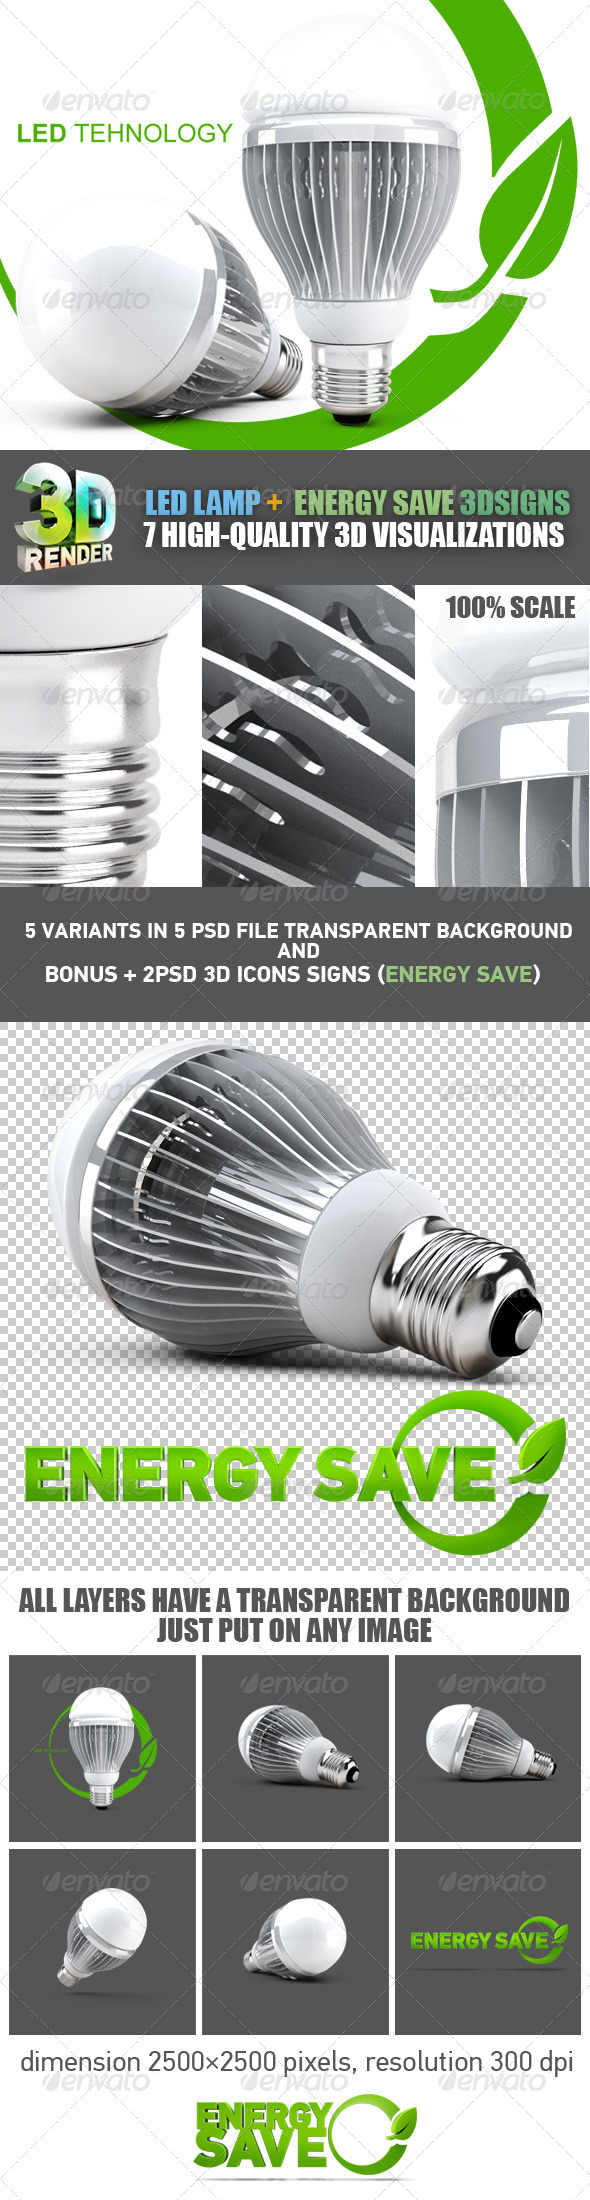 LED Lamp Energy Save Set - Technology 3D Renders